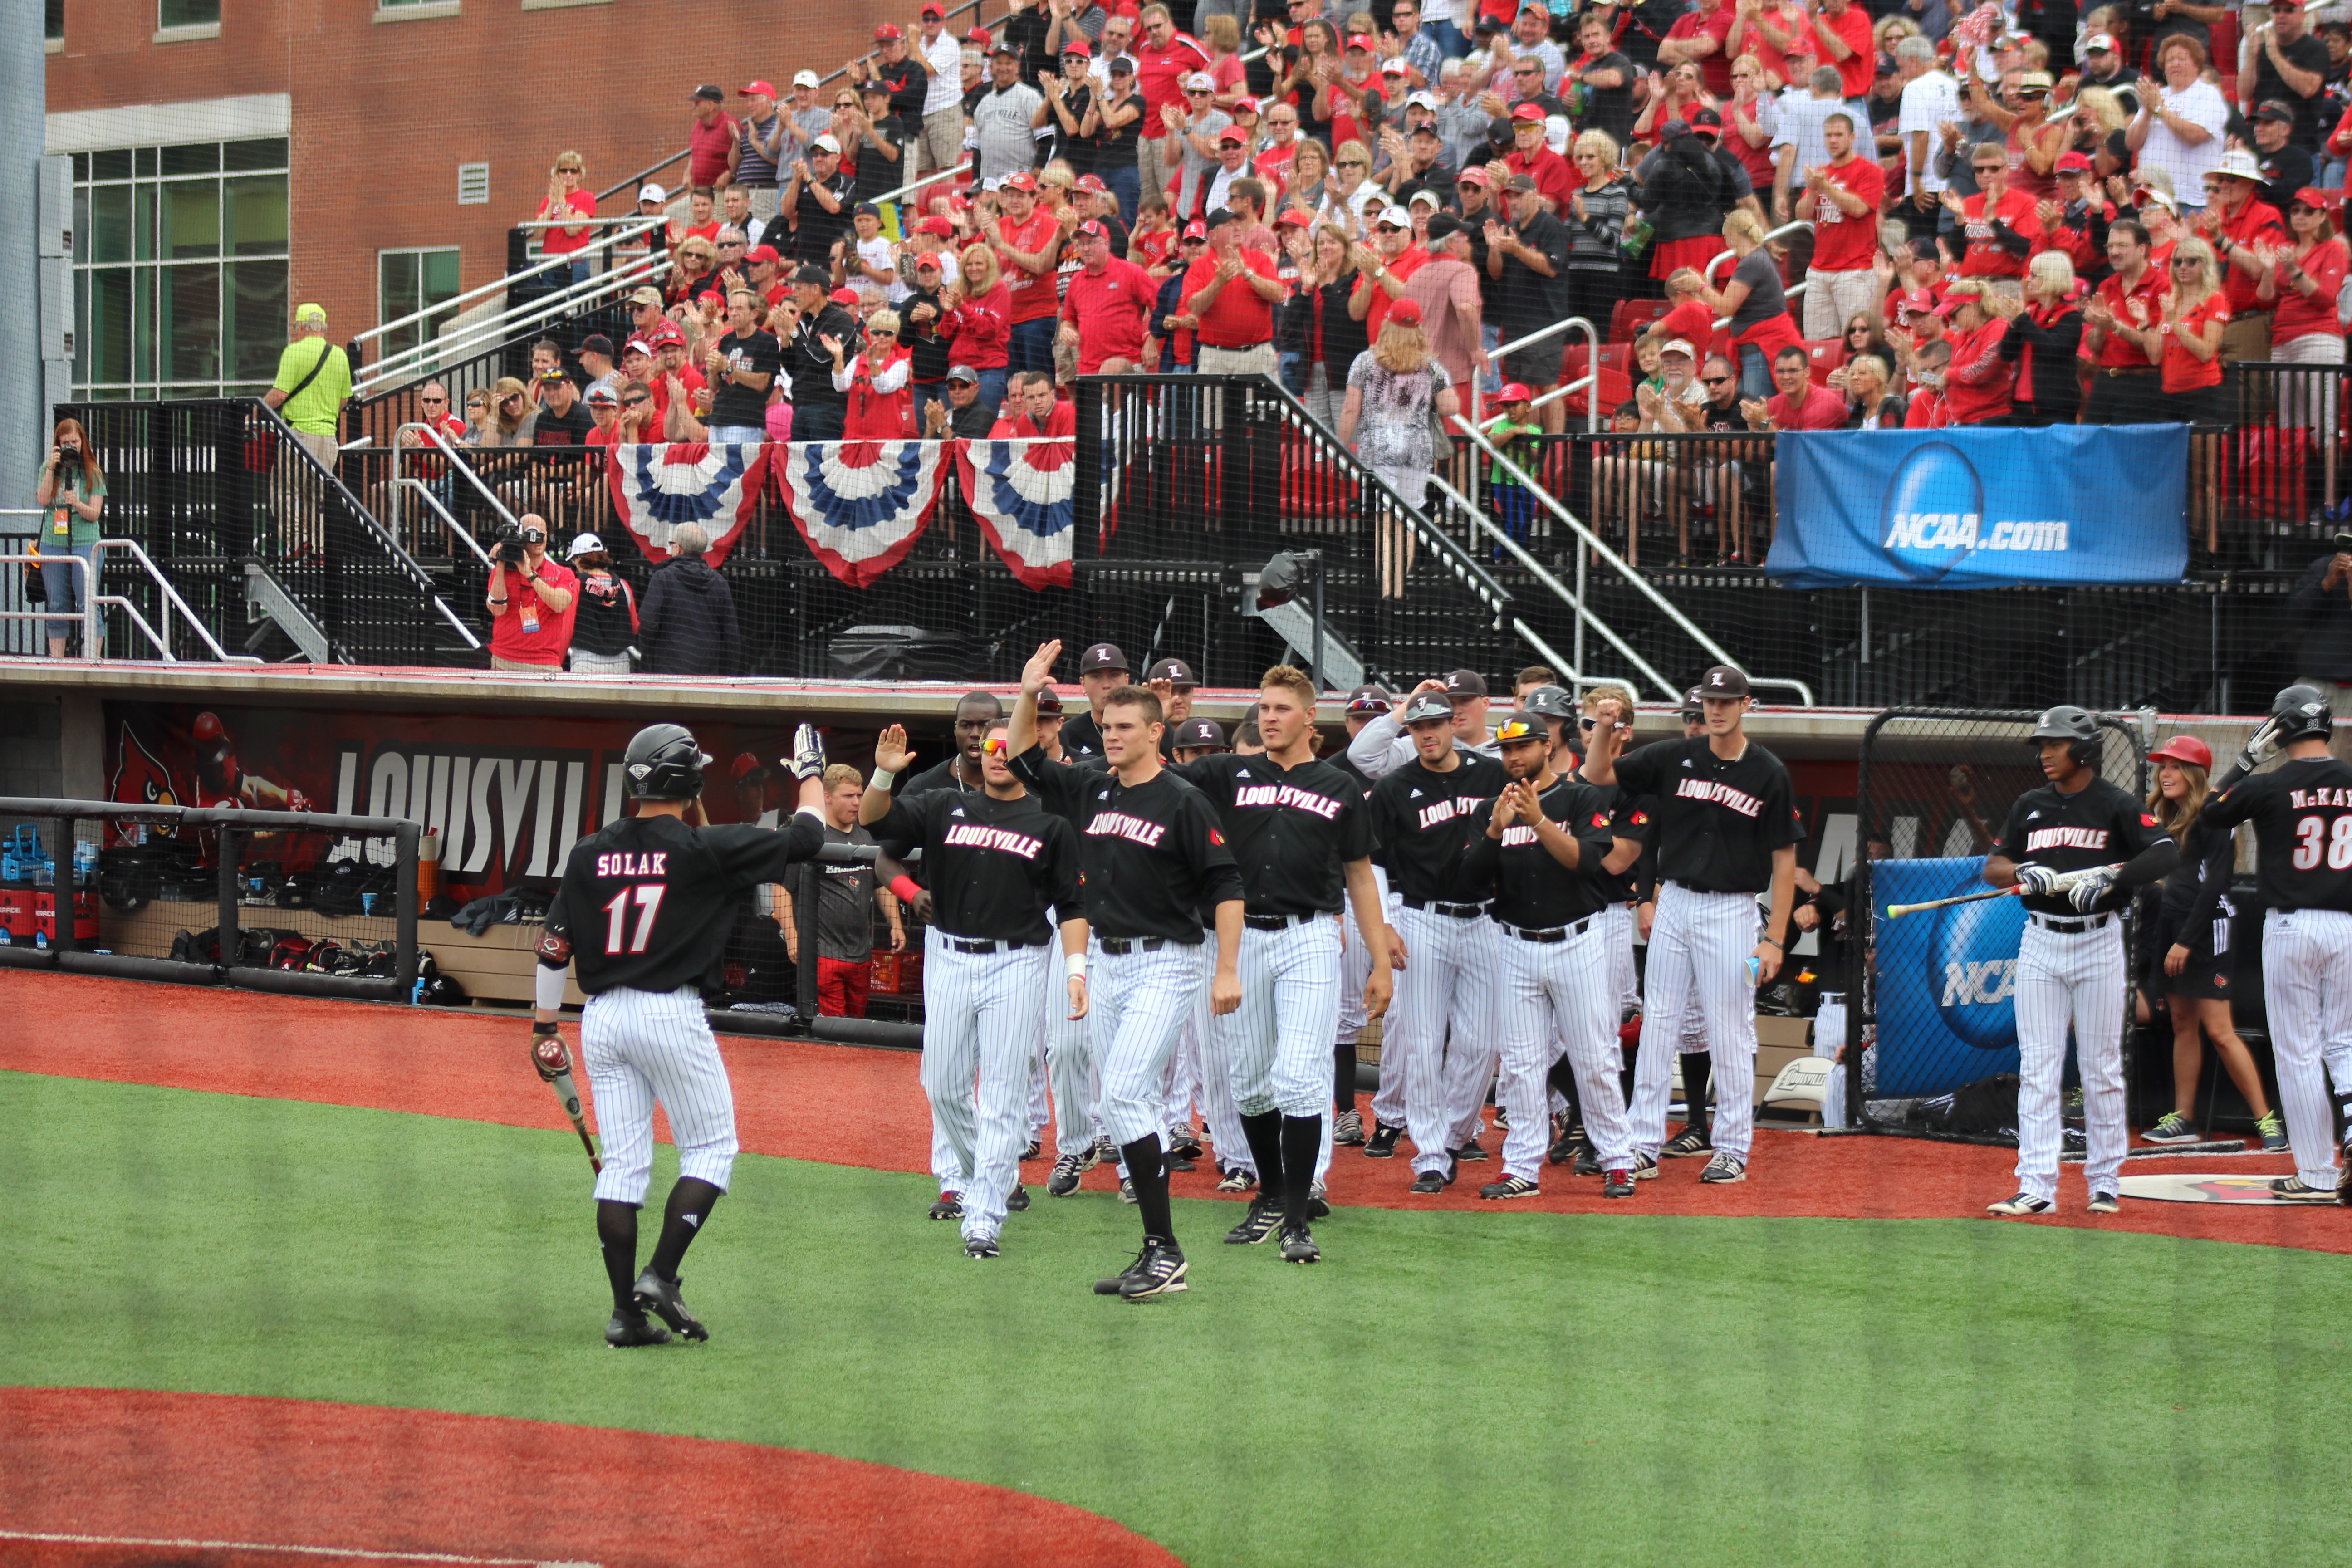 Nick Solak Run Celebration Louisville vs. Michigan 5-31-15 Jim Patterson Stadium Photo by Mark Blankenbaker